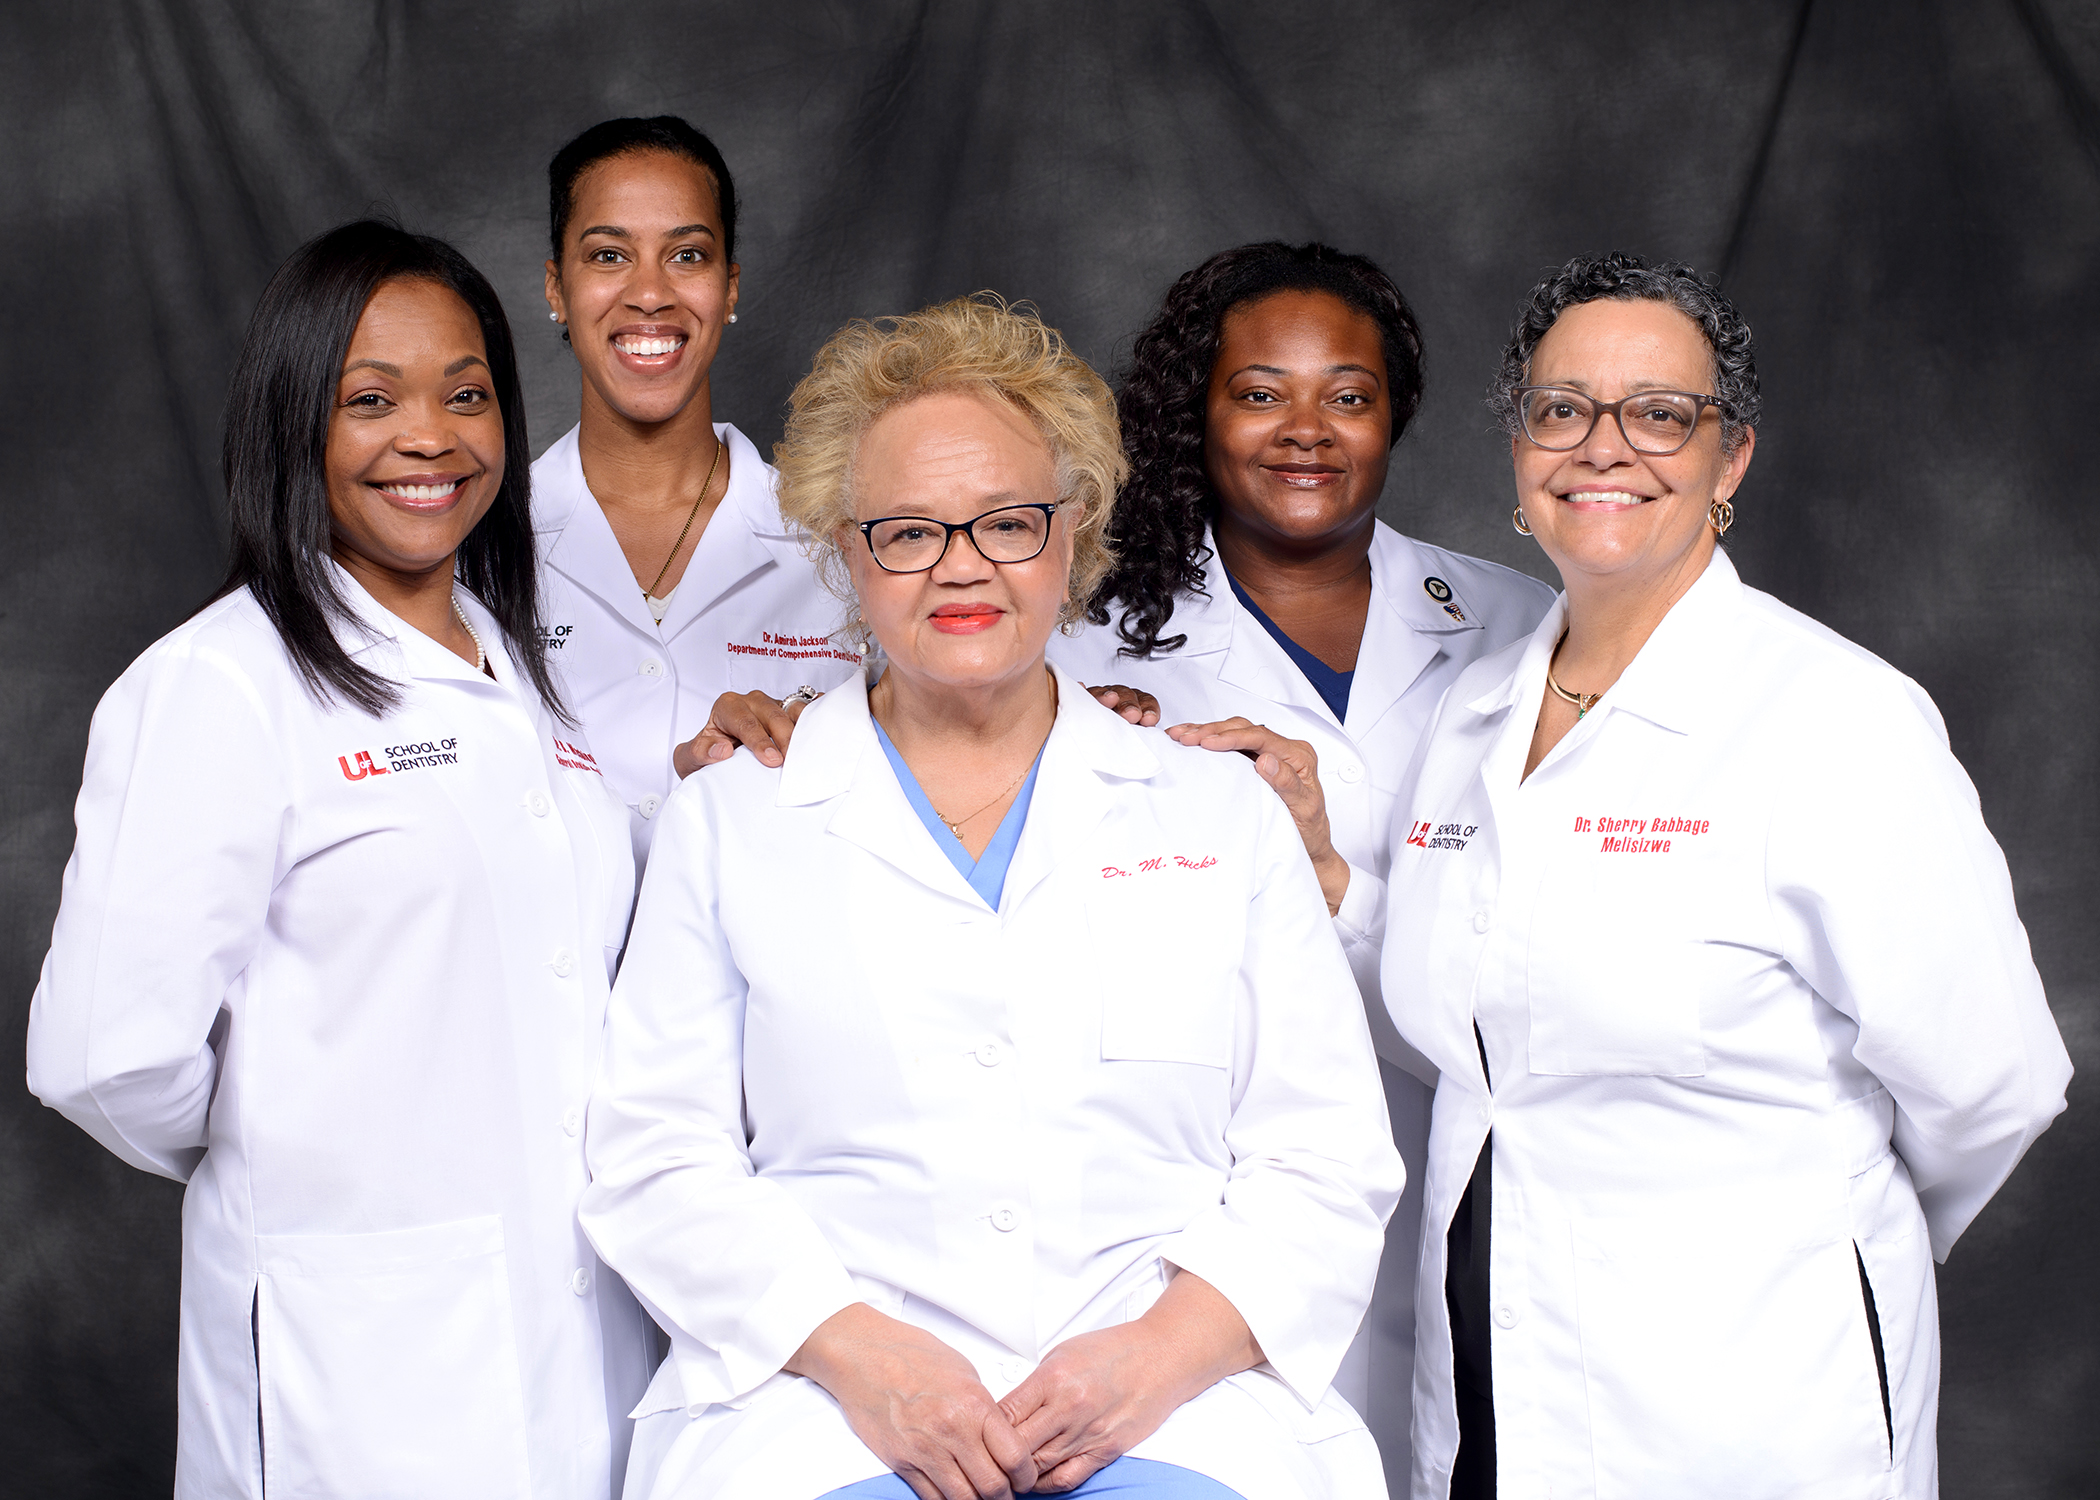 Dr. Madeline Hicks (seated) with Dr. Breacya Washington, Dr. Amirah Jackson, Dr. Tiffany McPheeters and Dr. Sherry Babbage (standing L-R).